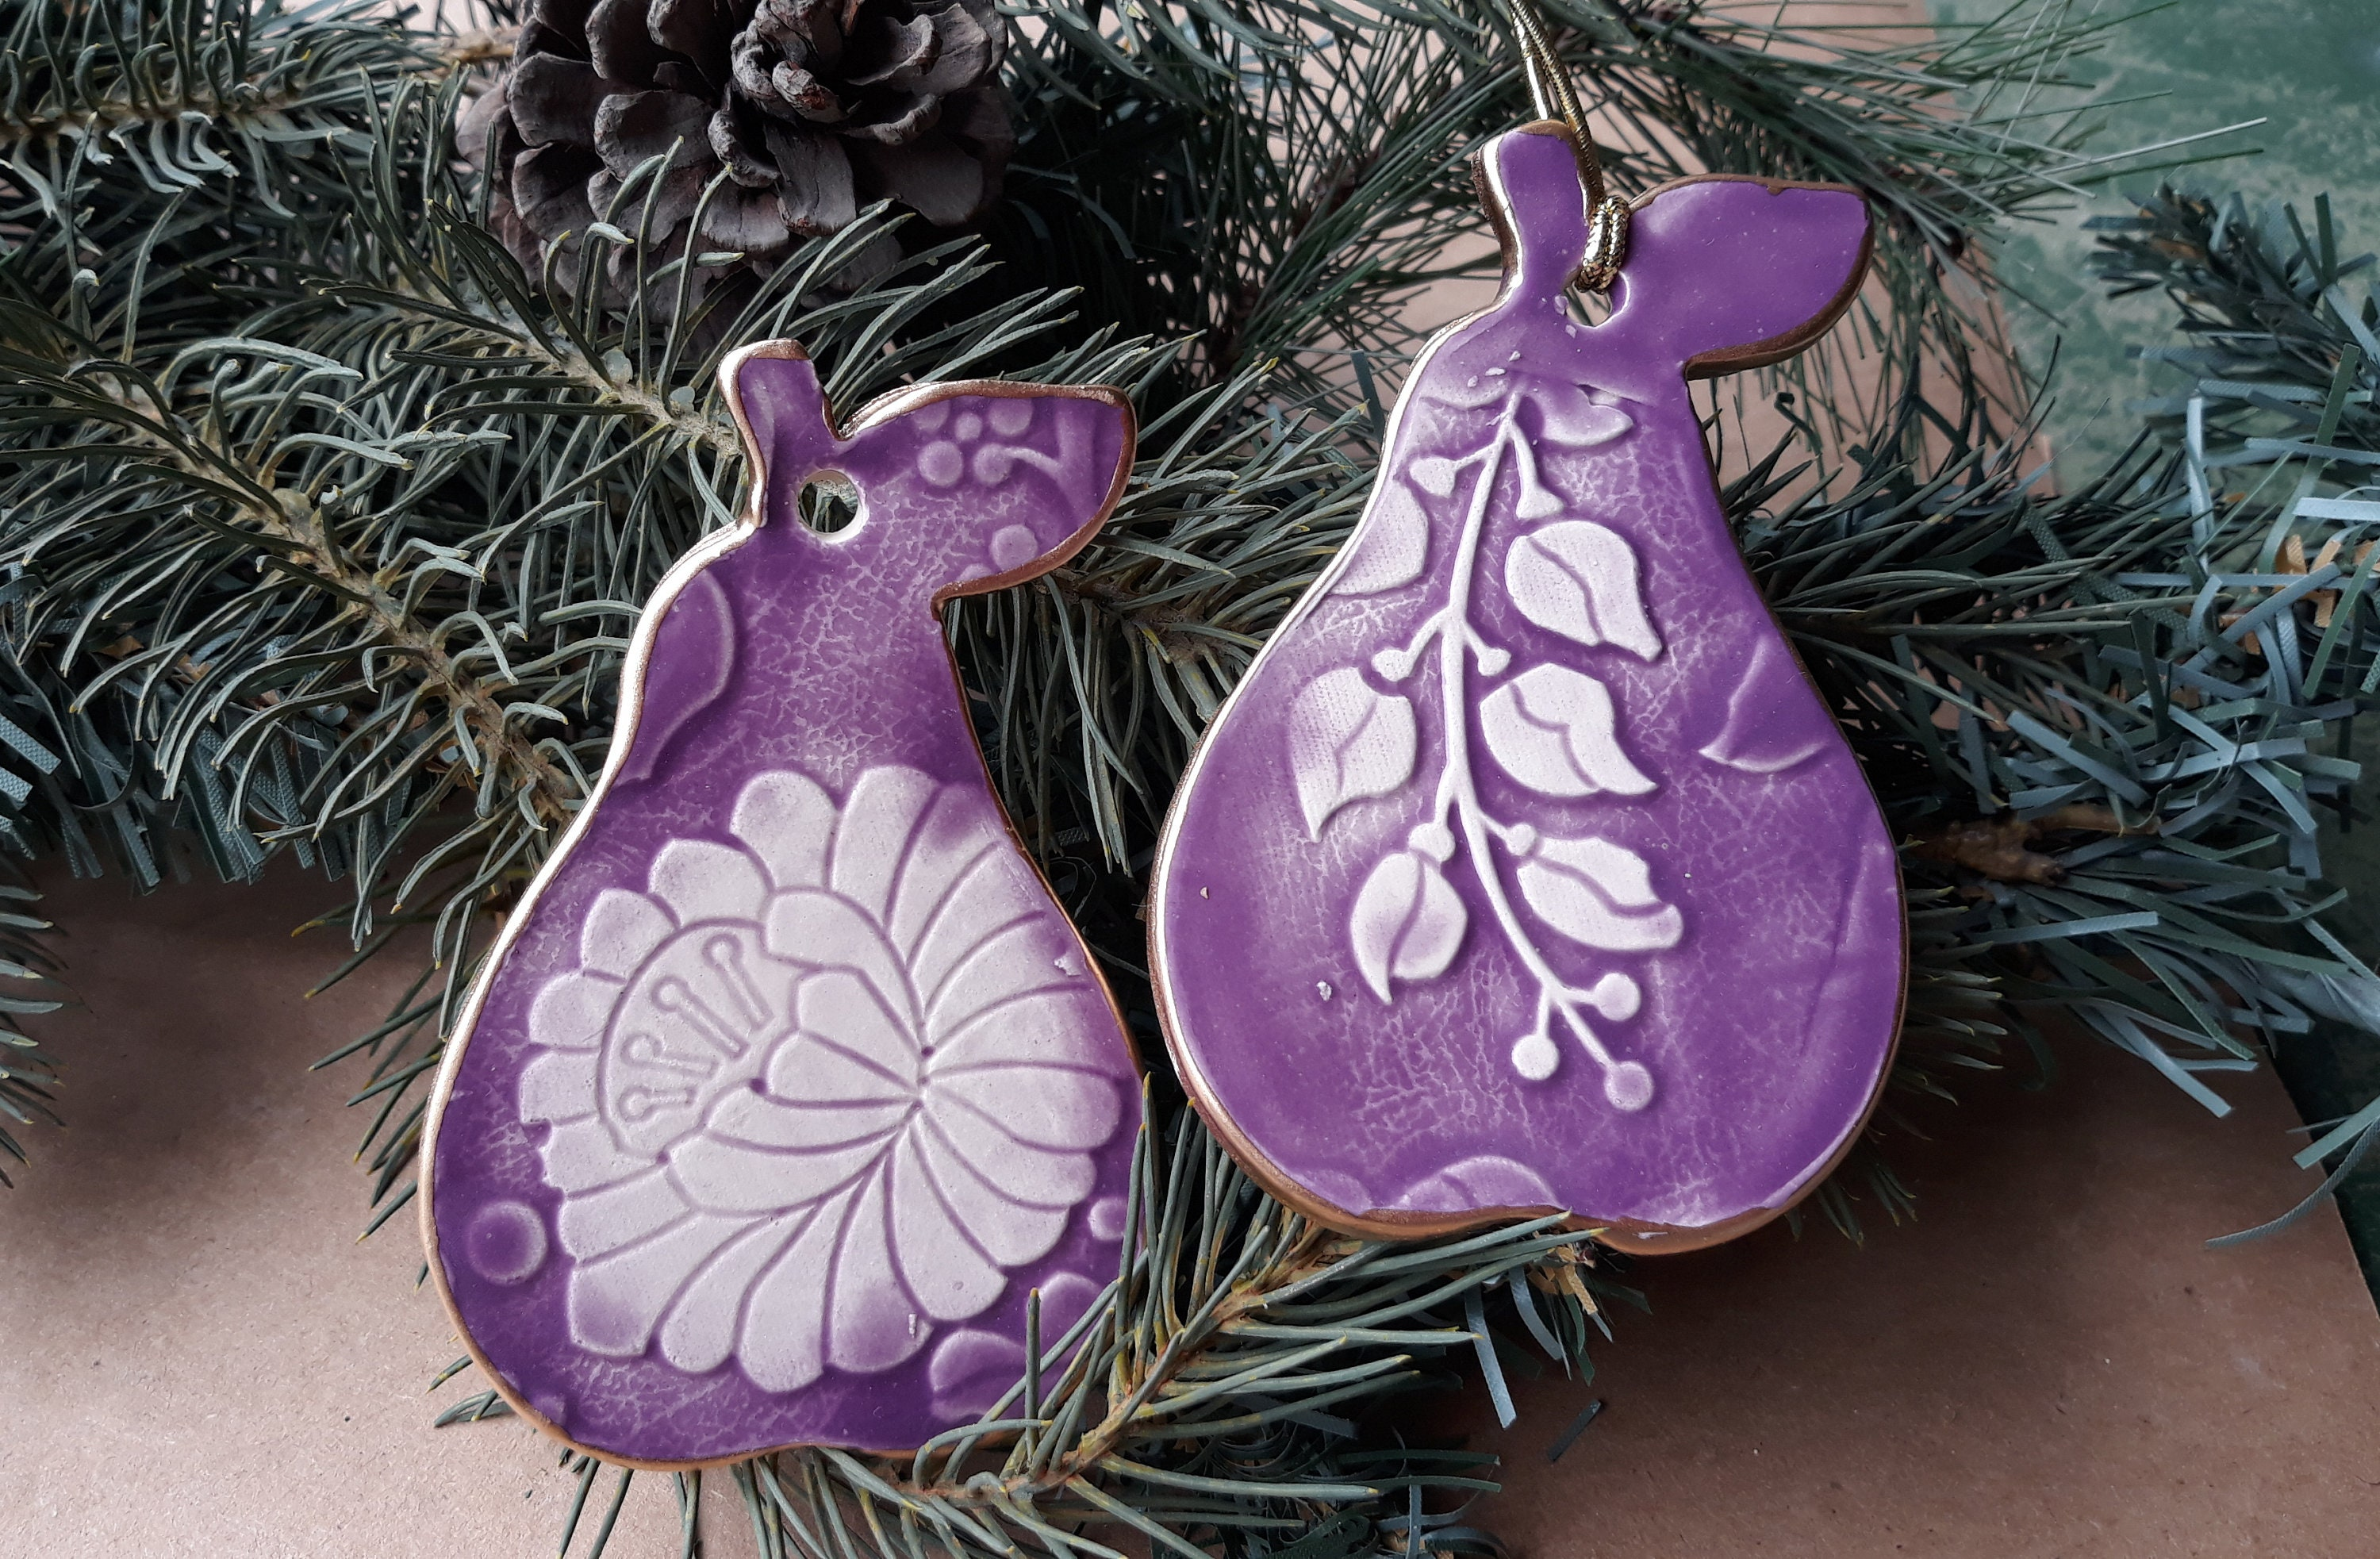 TWO Ceramic Pear Christmas Ornaments Holiday Decor Purple ...